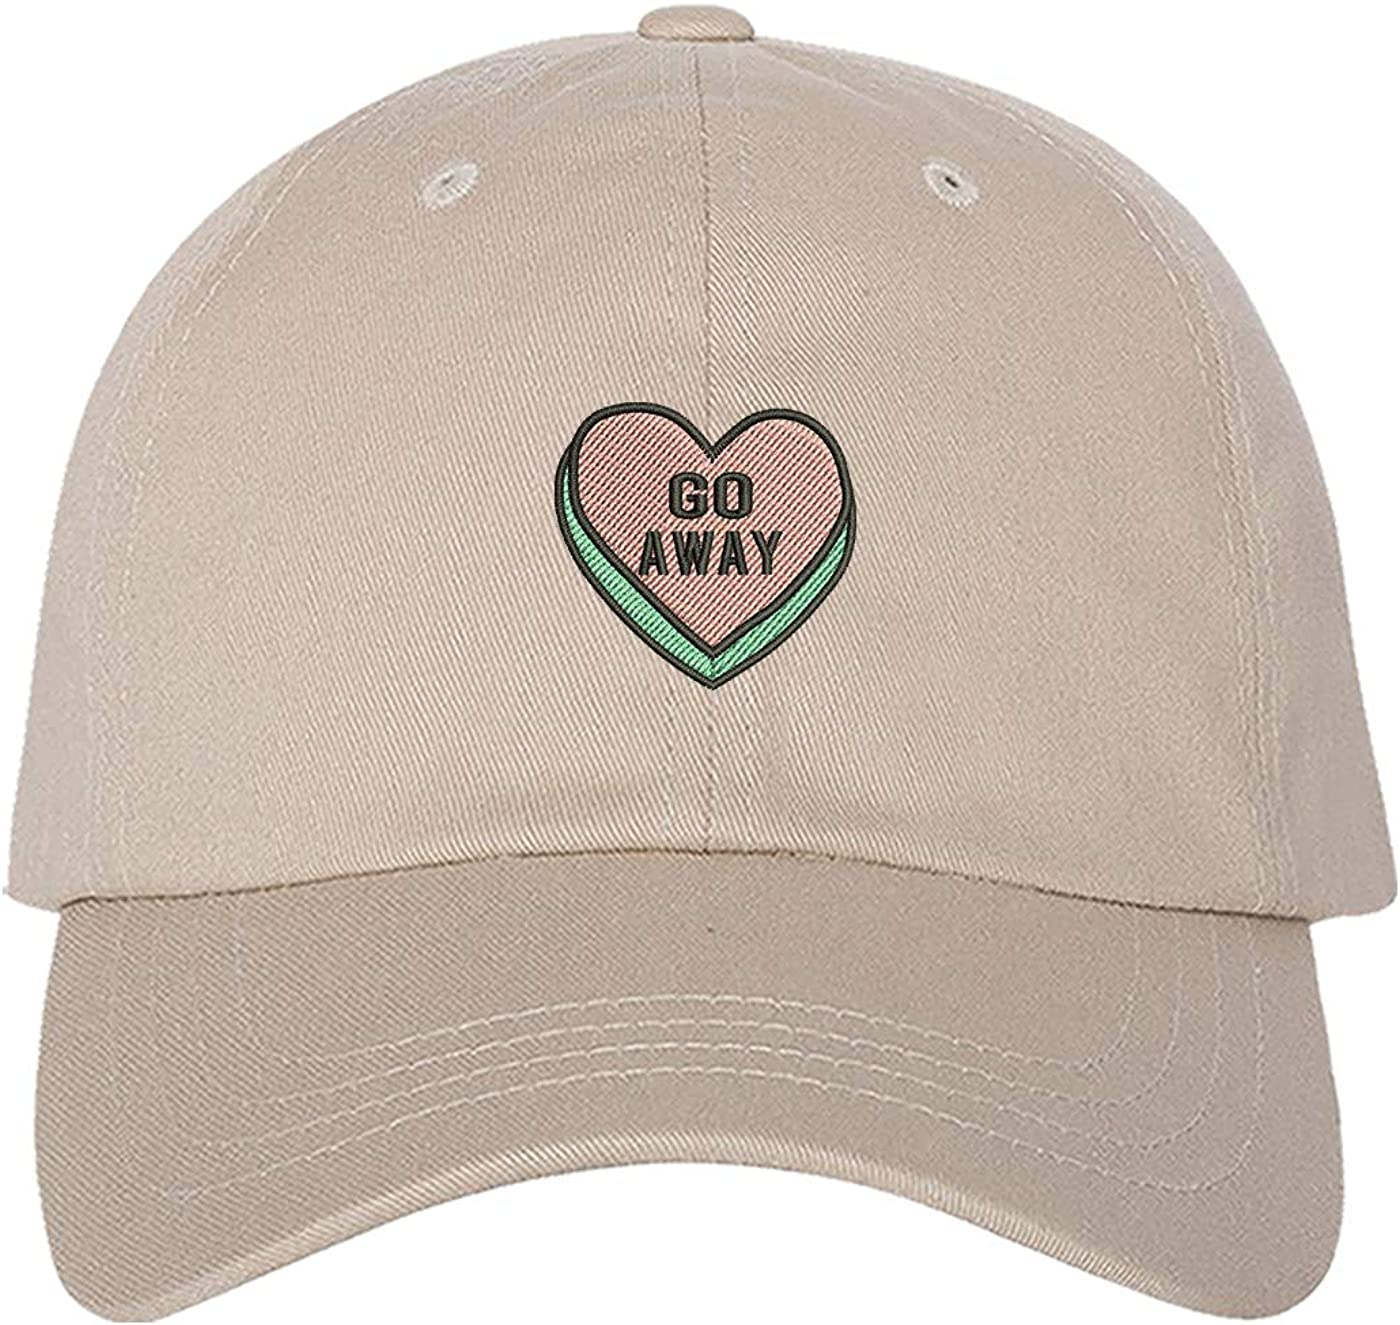 Prfcto Lifestyle Go Away Candy Heart Baseball Cap - Valetines Day Hat - Unisex